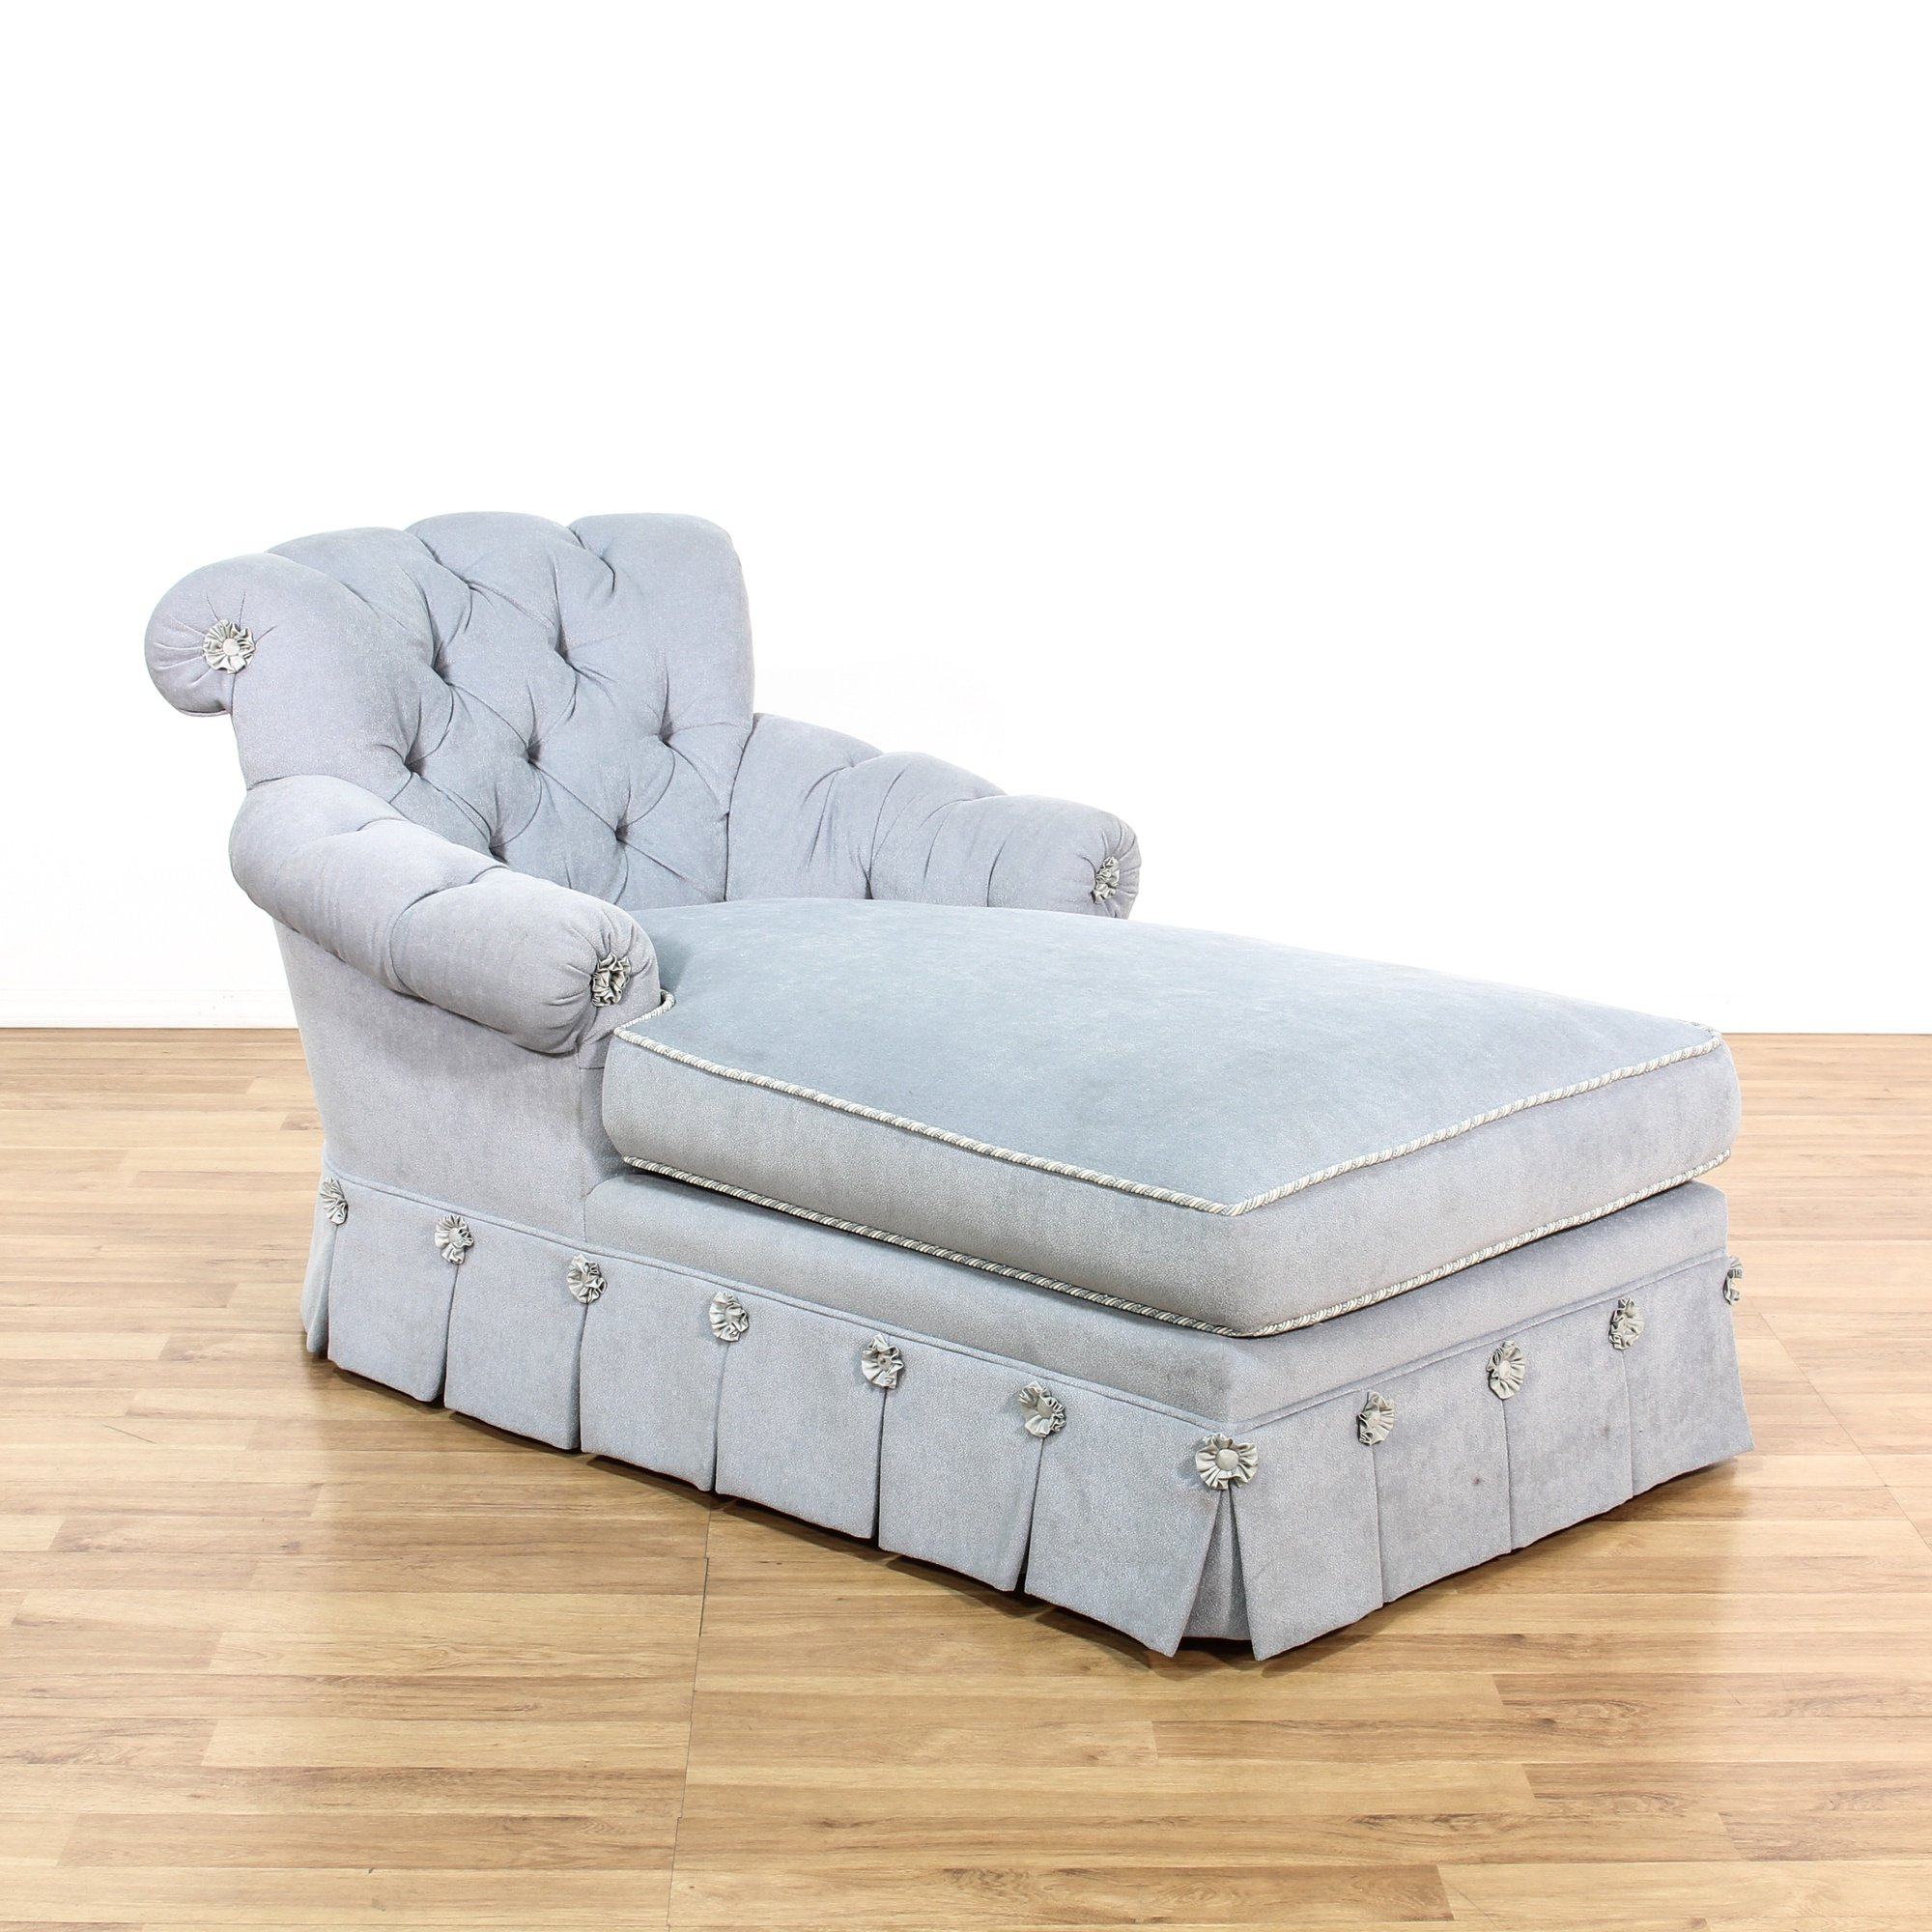 Cottage Chic Light Blue Tufted Chaise Lounge Loveseat